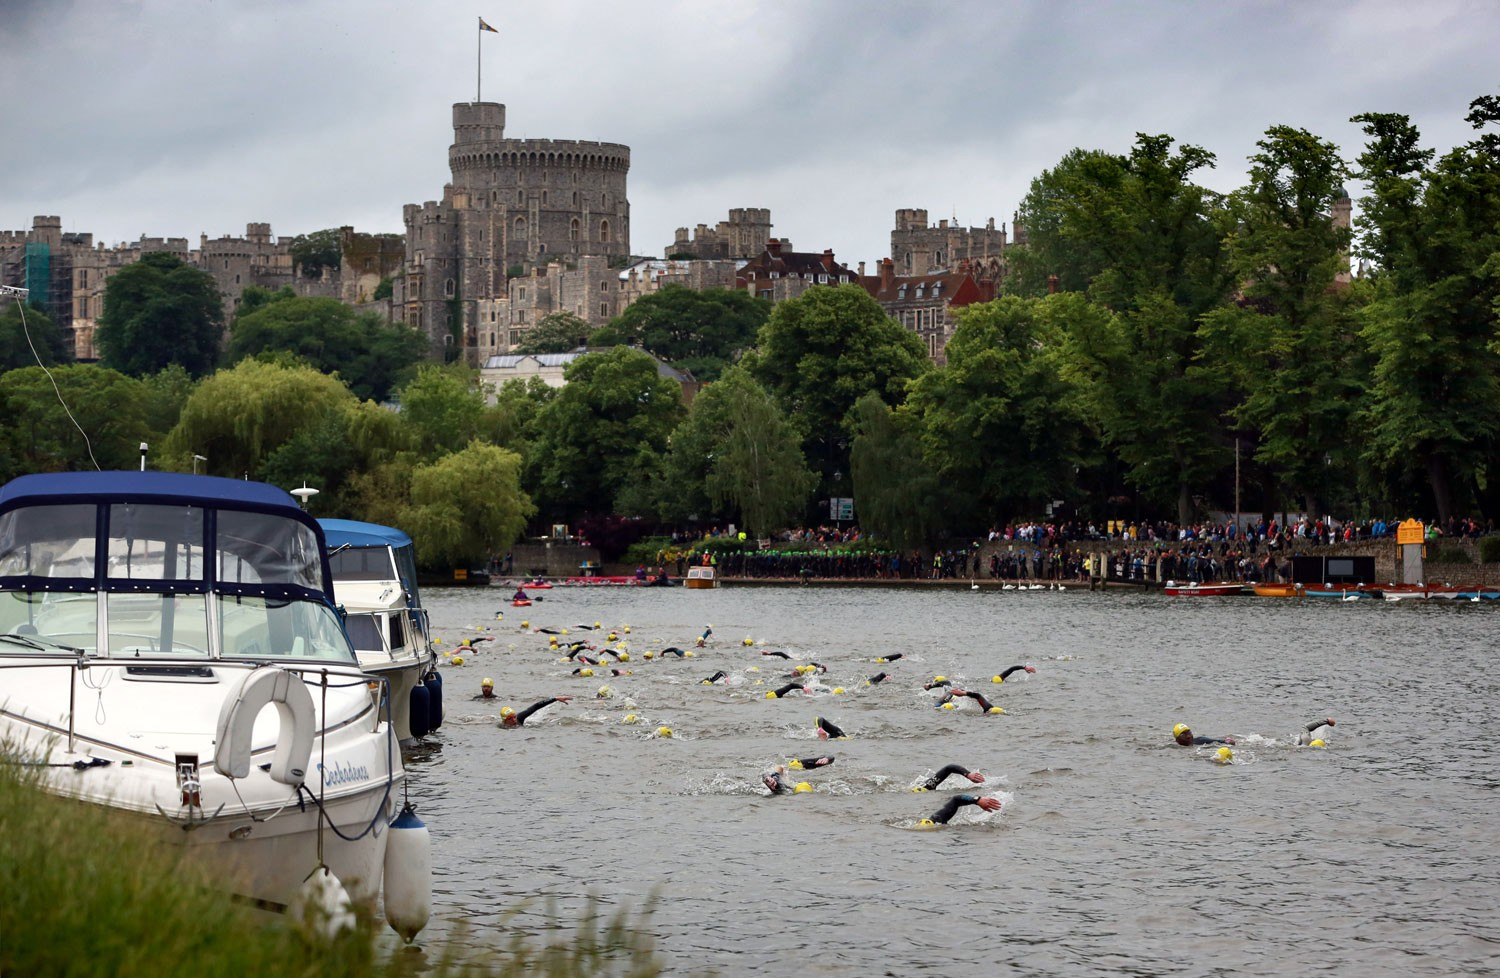 Royal Windsor Triathlon - image 2